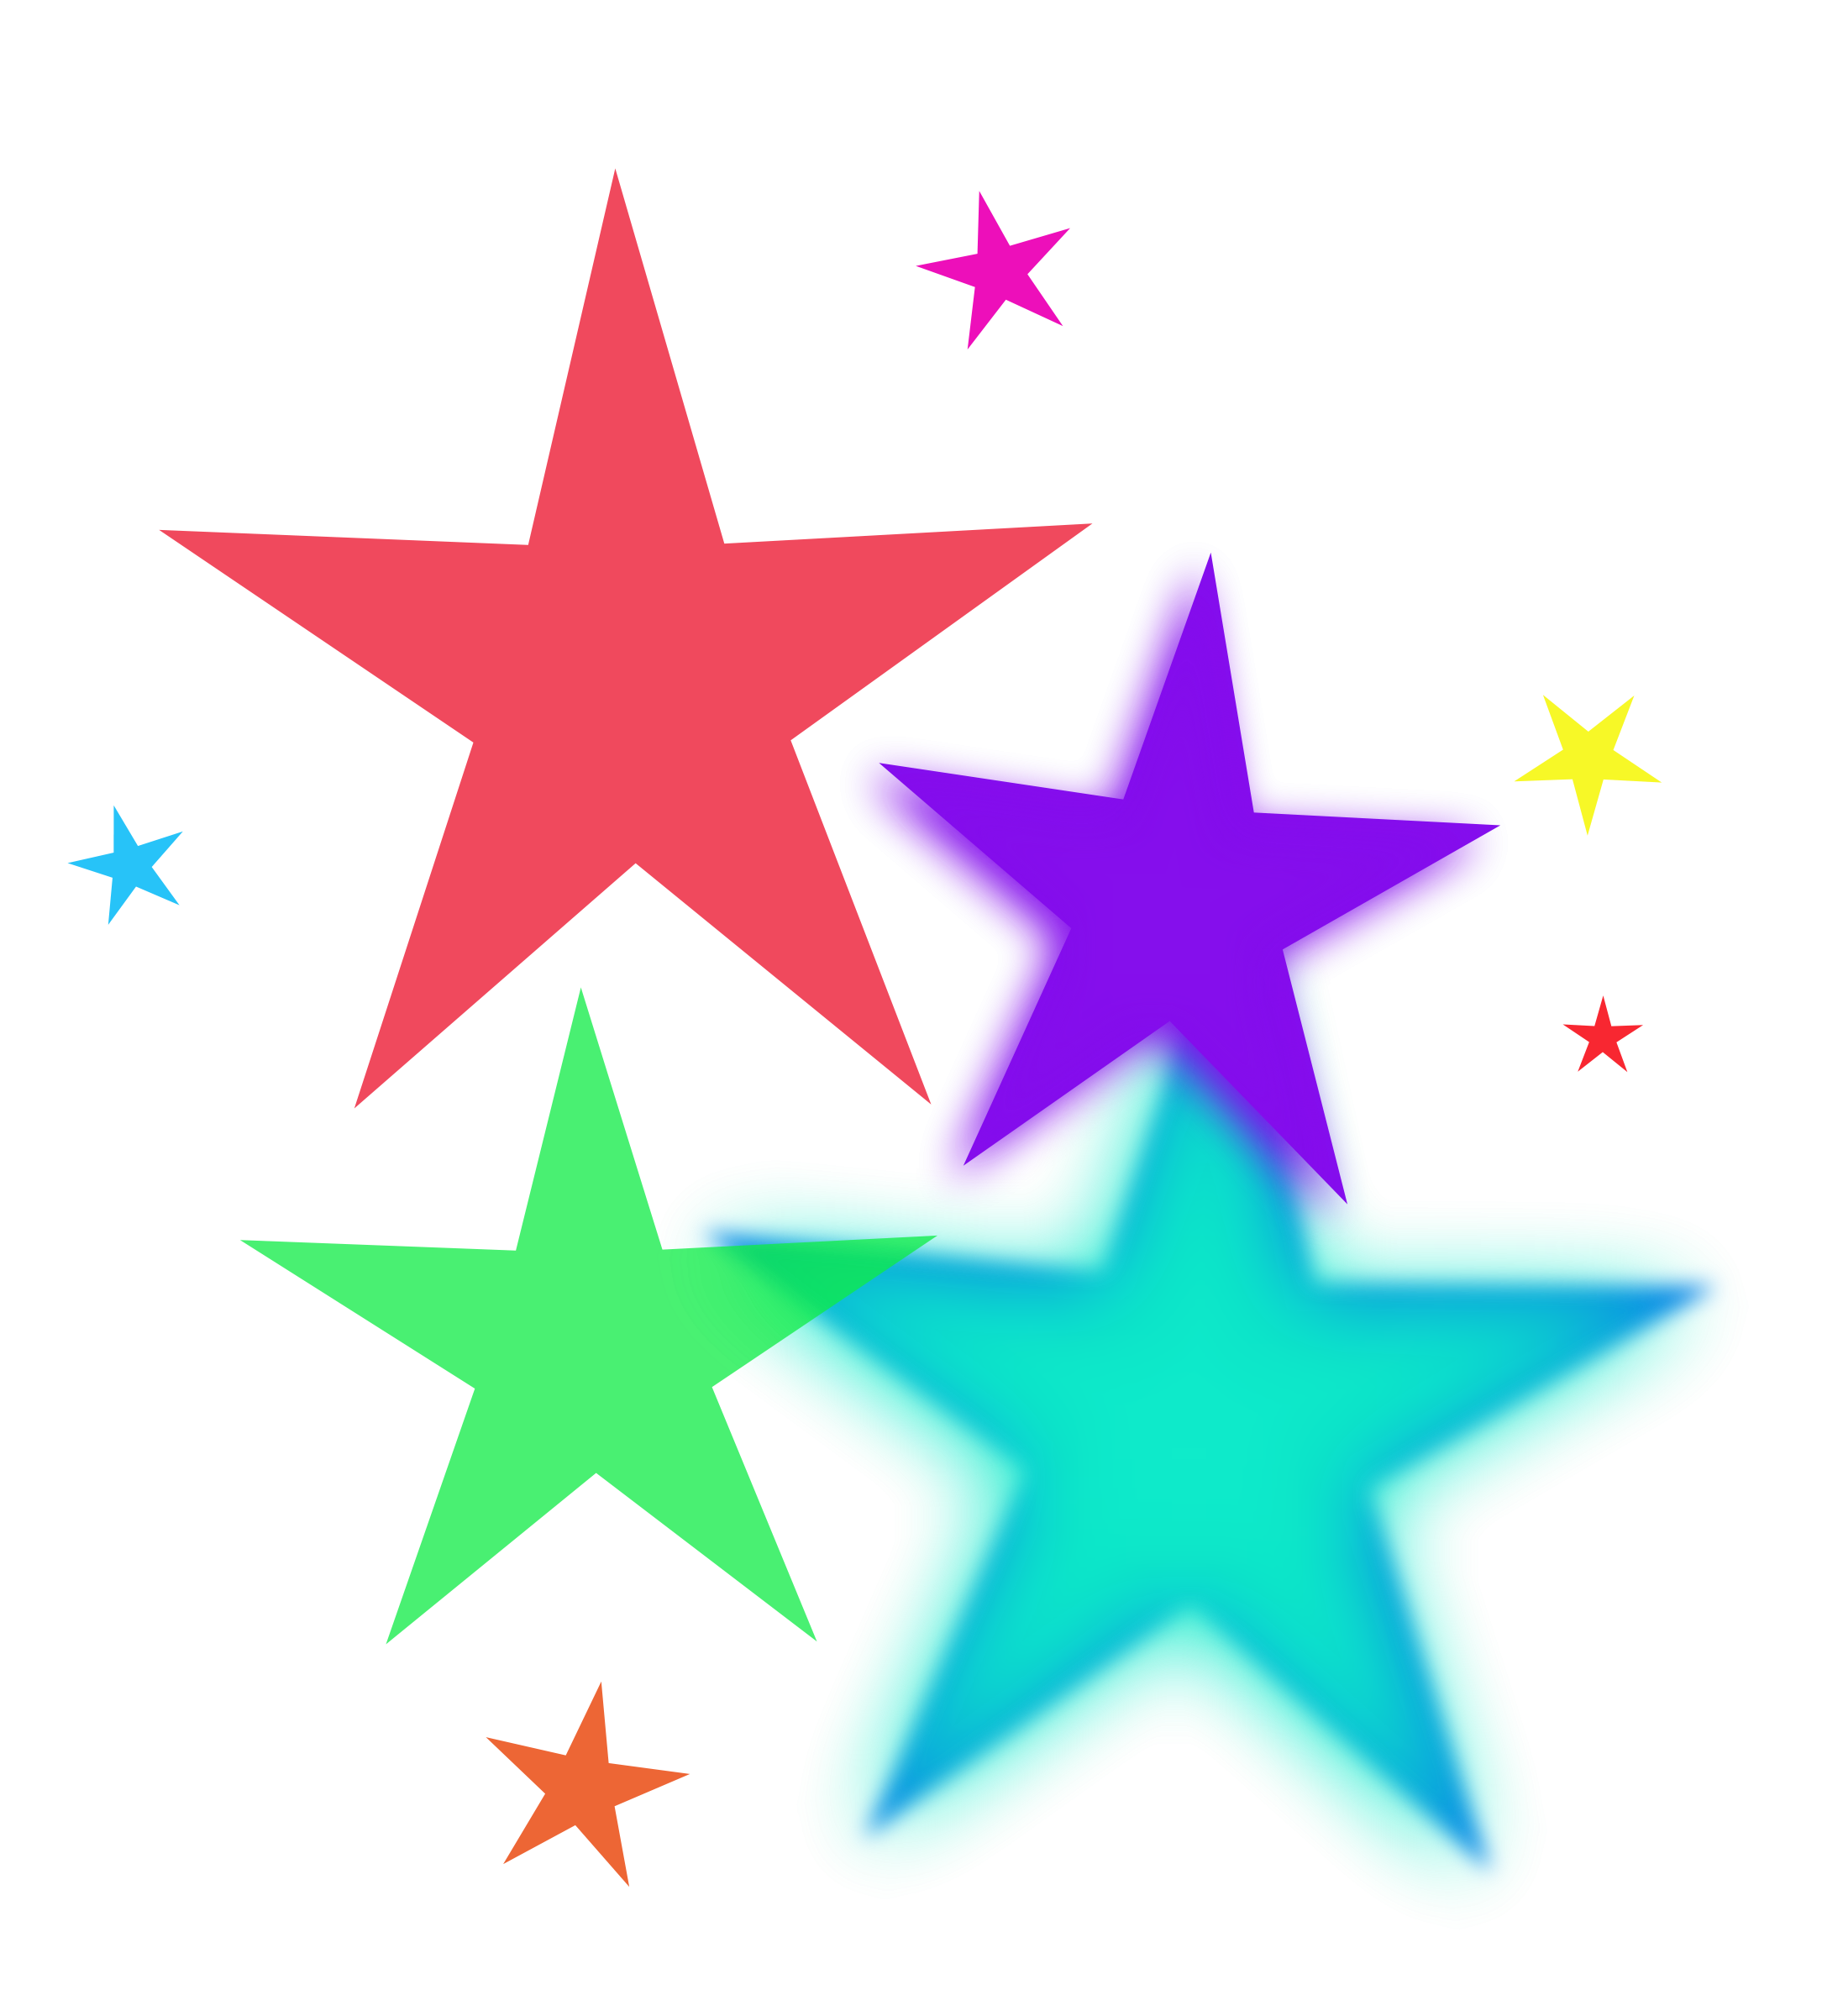 Clipart star images graphic download Colouful Clipart Shooting Star | jokingart.com Star Clipart graphic download